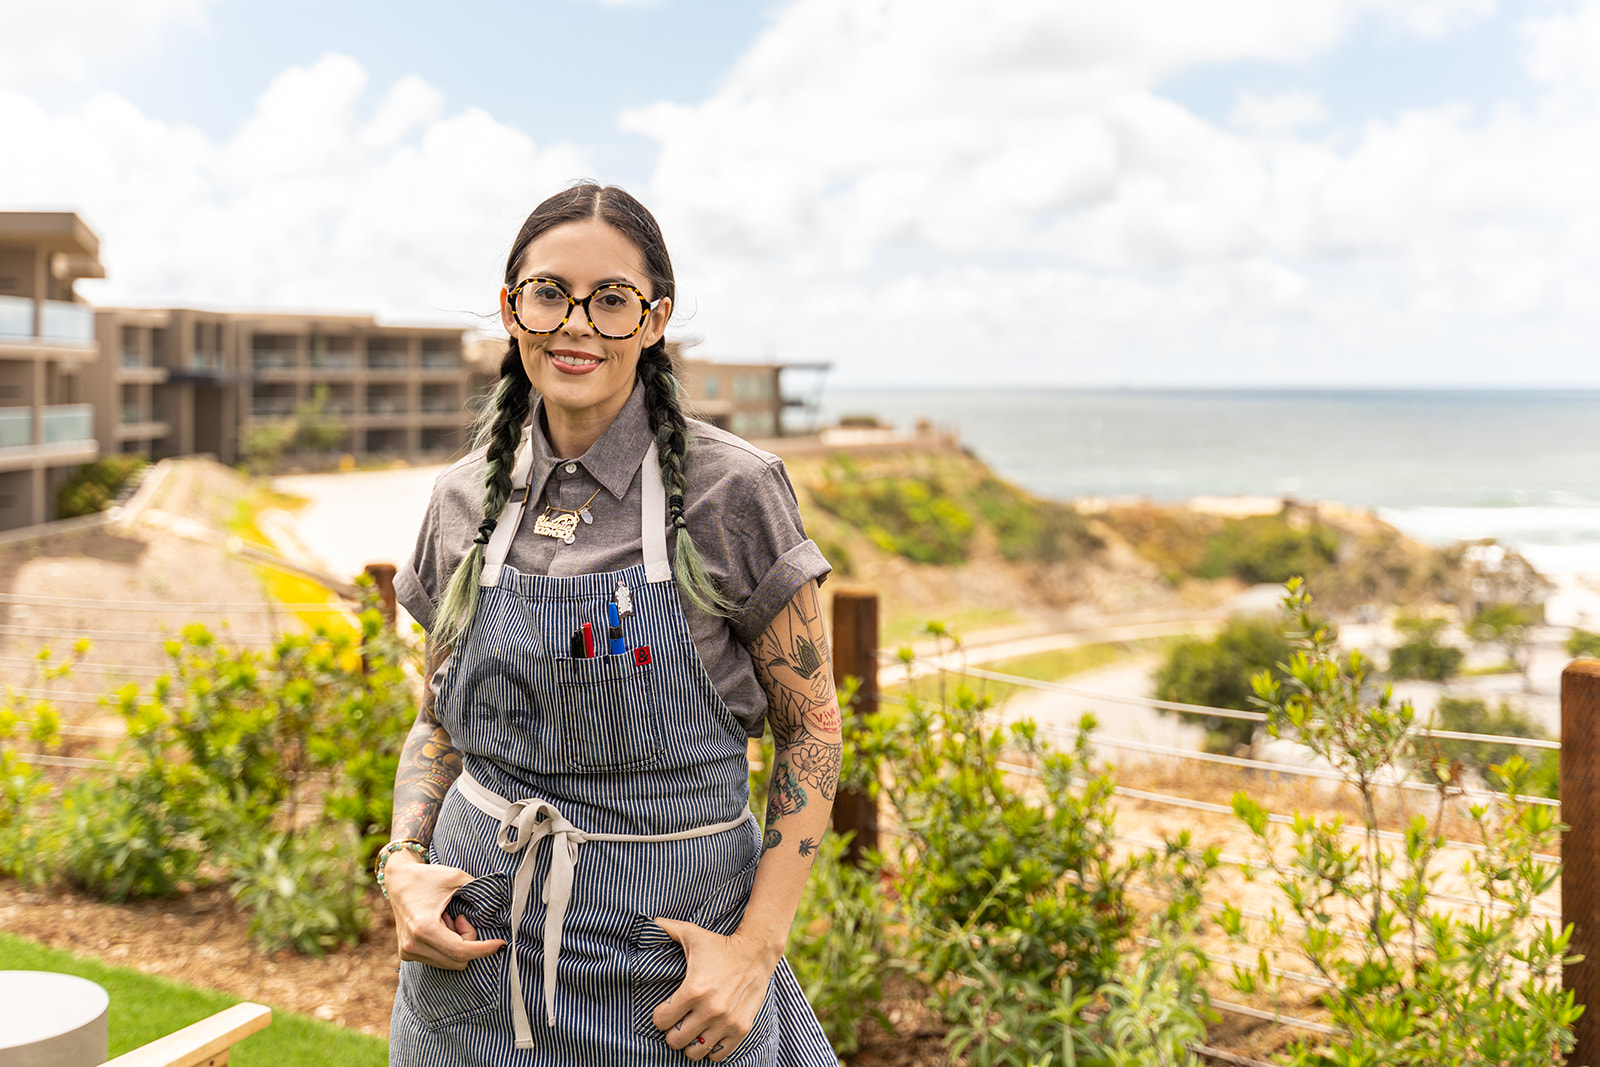 Chef Claudette Zepeda stands in front of Vaga restaurant at the Alila Marea Beach Resort